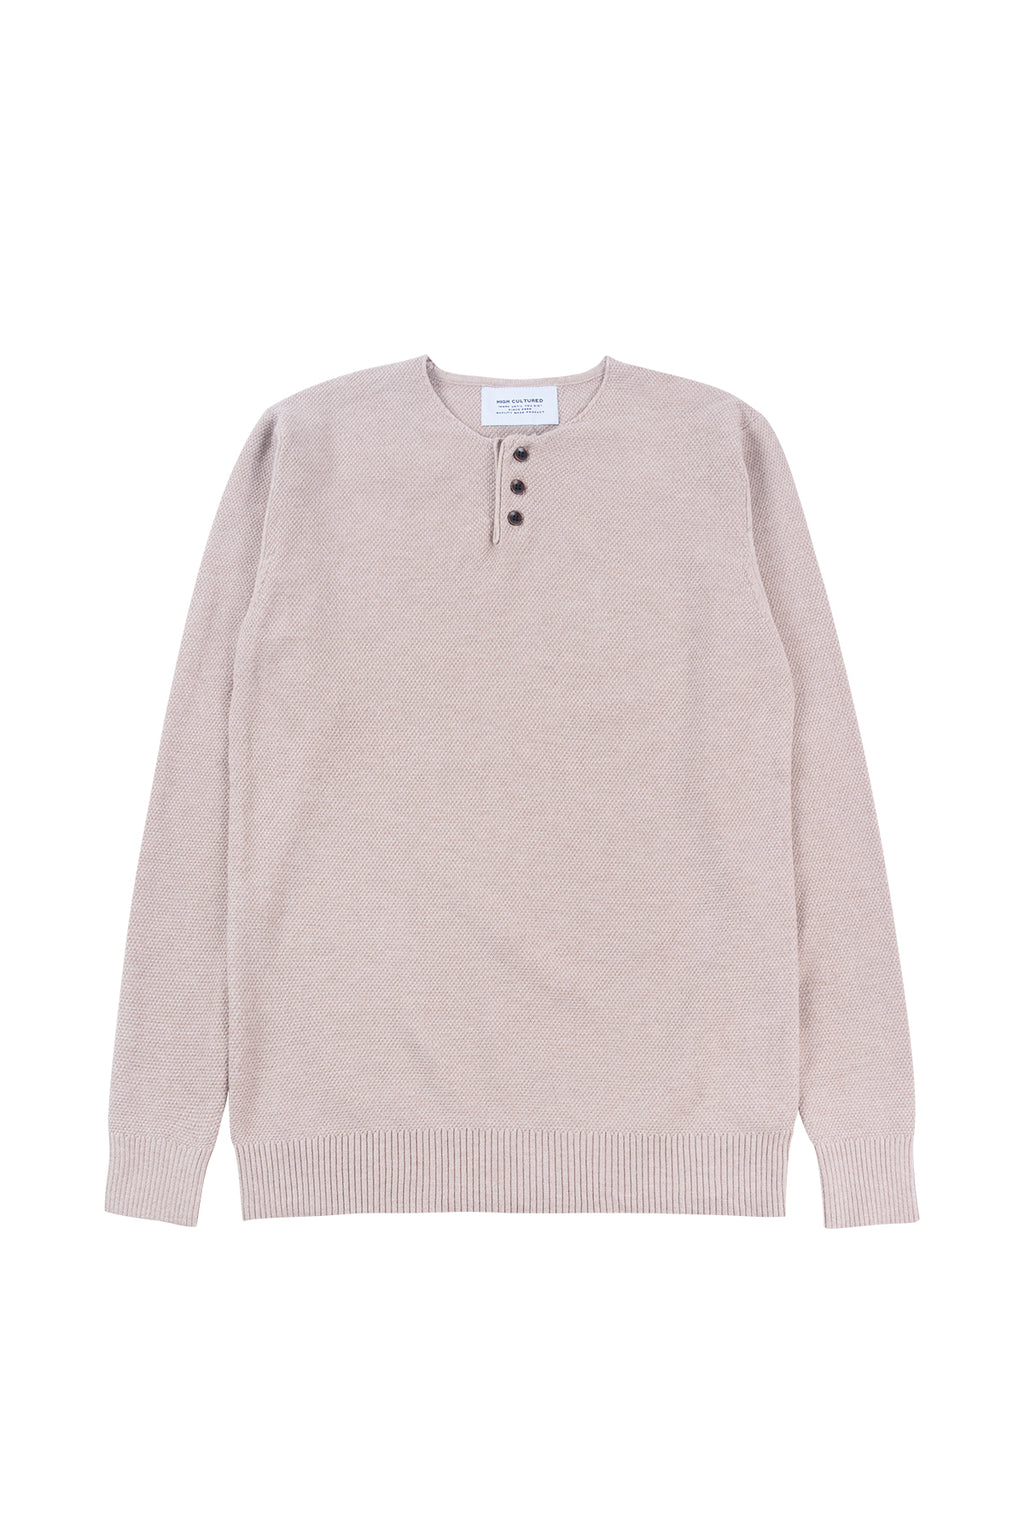 THREE-BUTTON WAFFLE KNIT SWEATER | BEIGE - 185